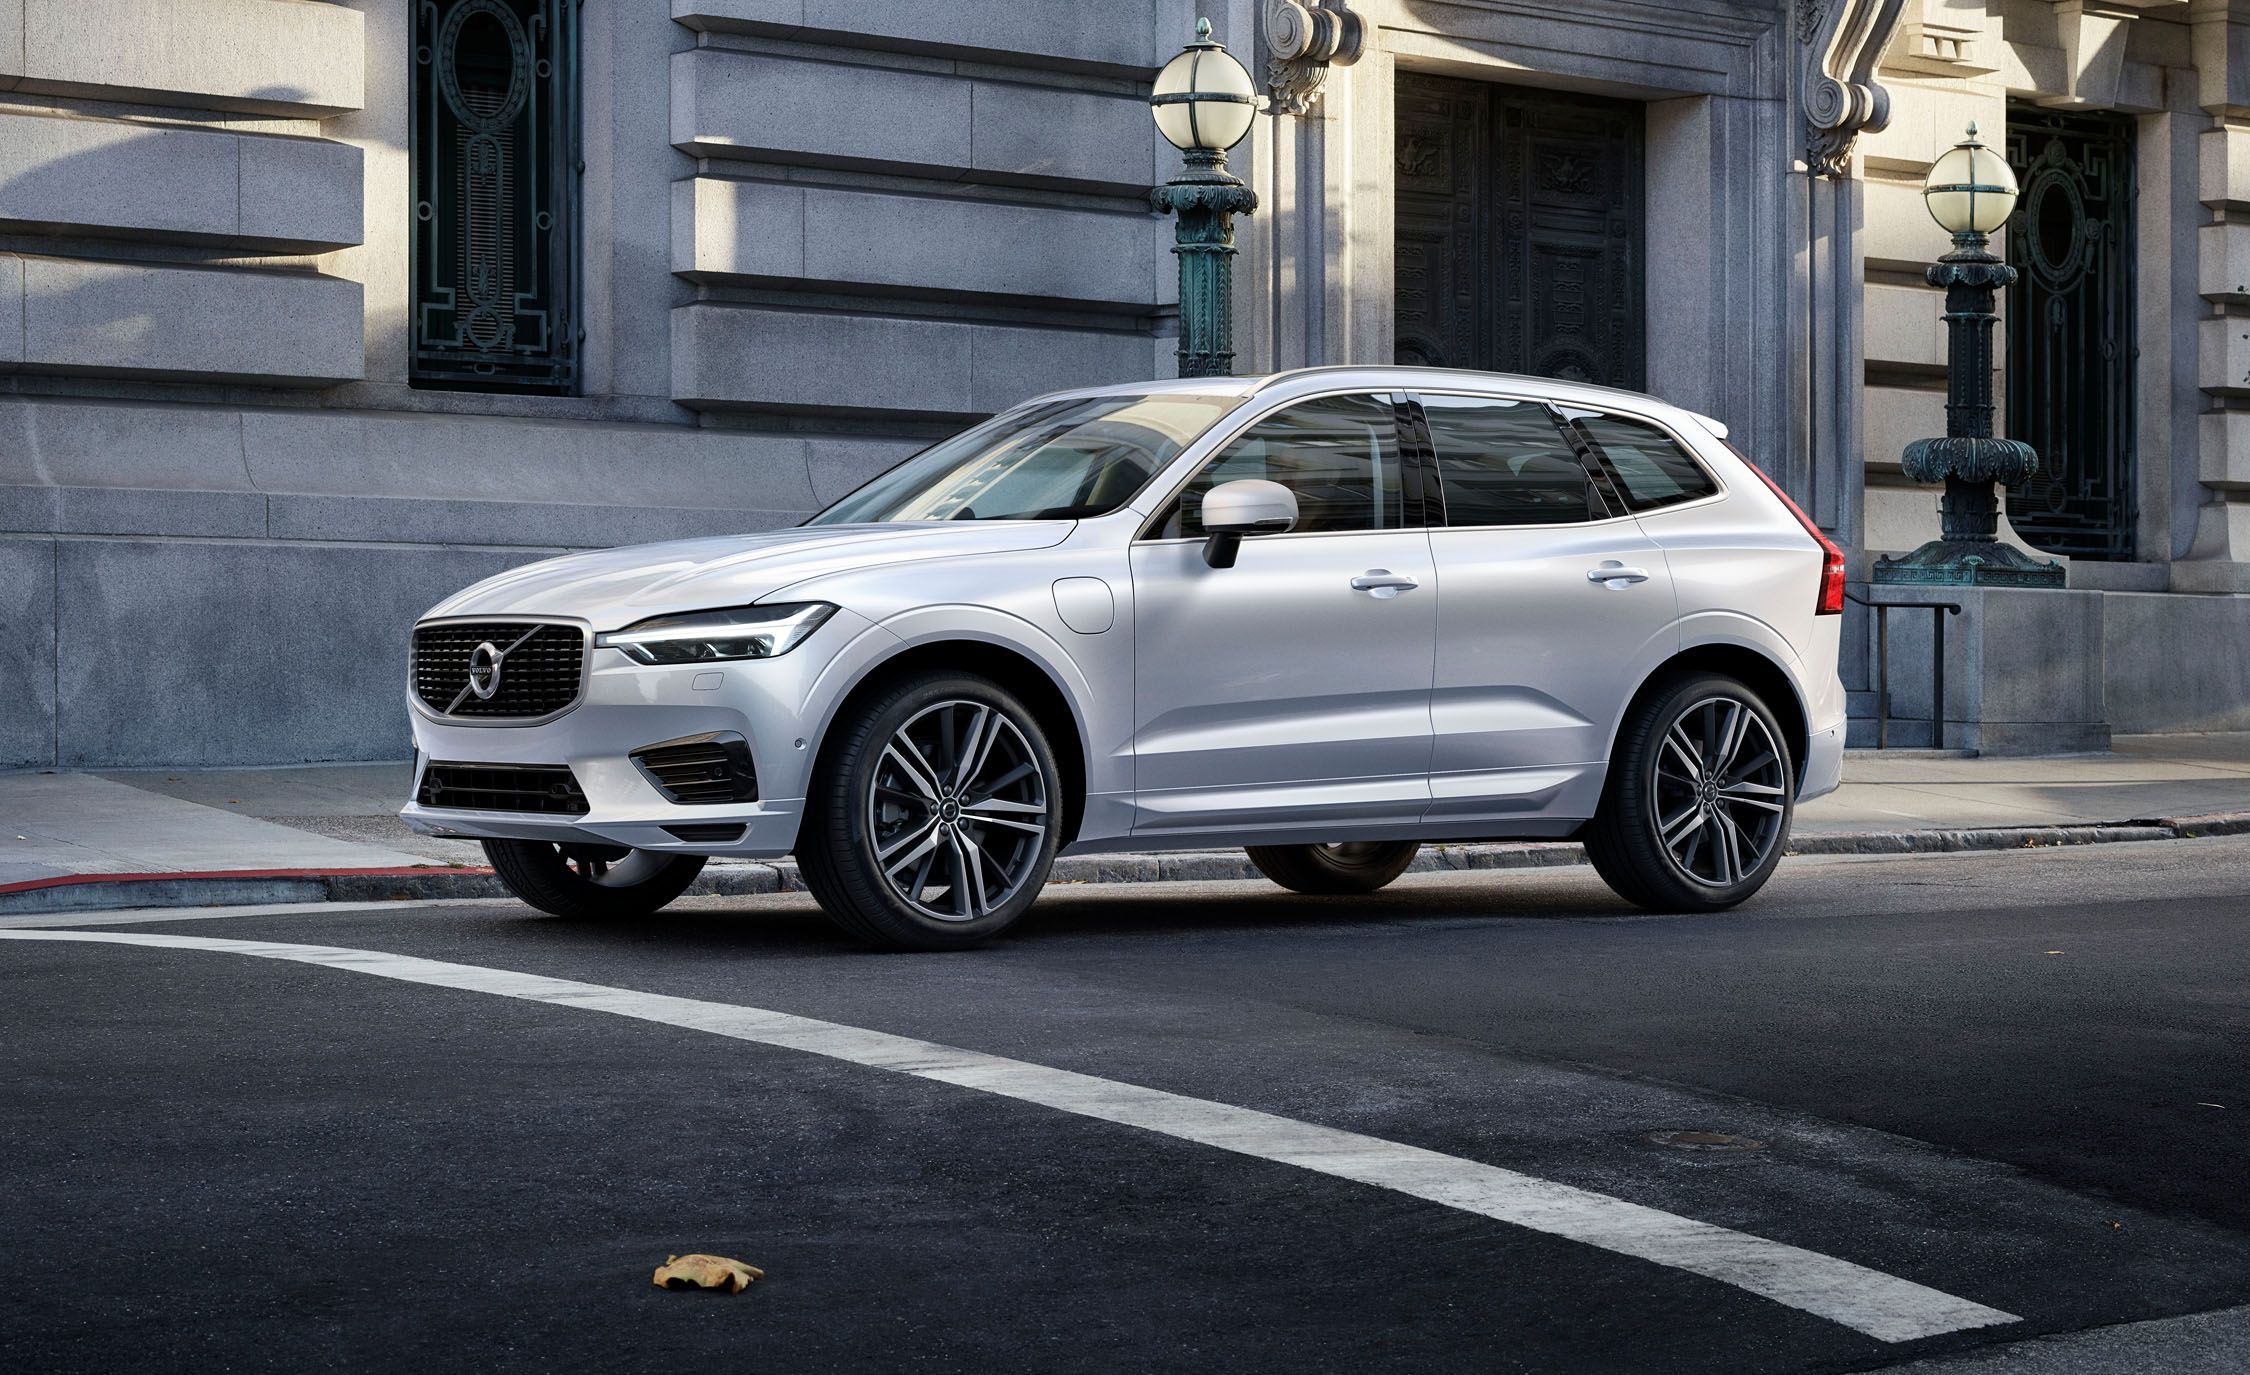 Image result for 2018 volvo xc60